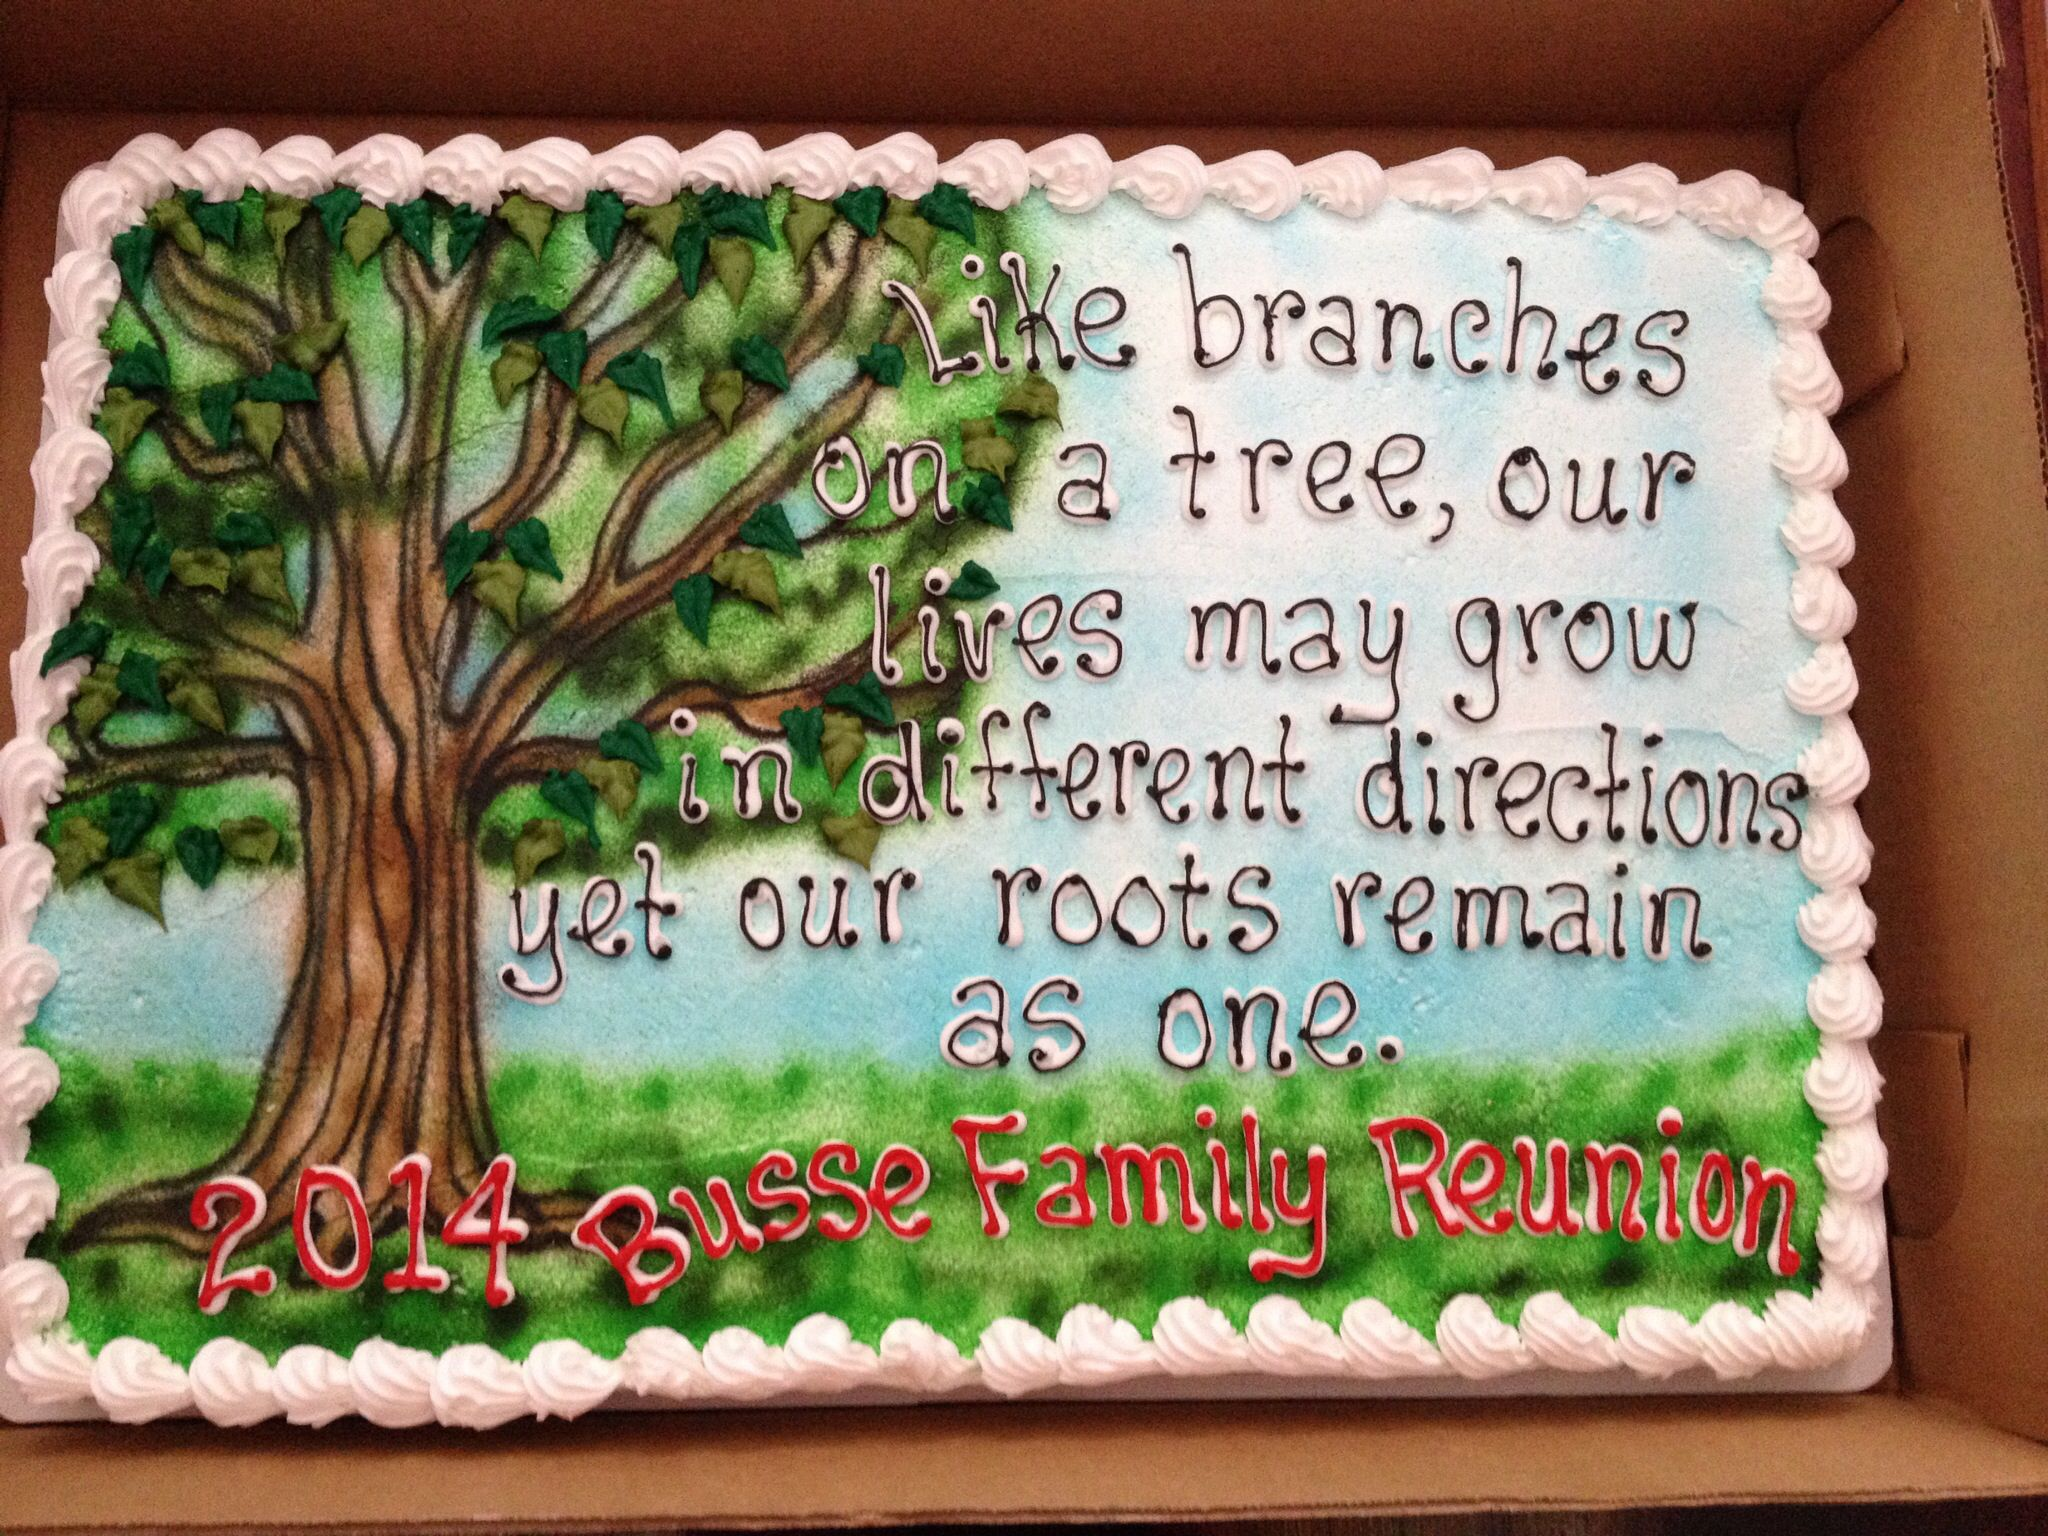 Homemade reception decorations cake ideas and designs - I Had This Cake Made For Our Family Reunion Love It